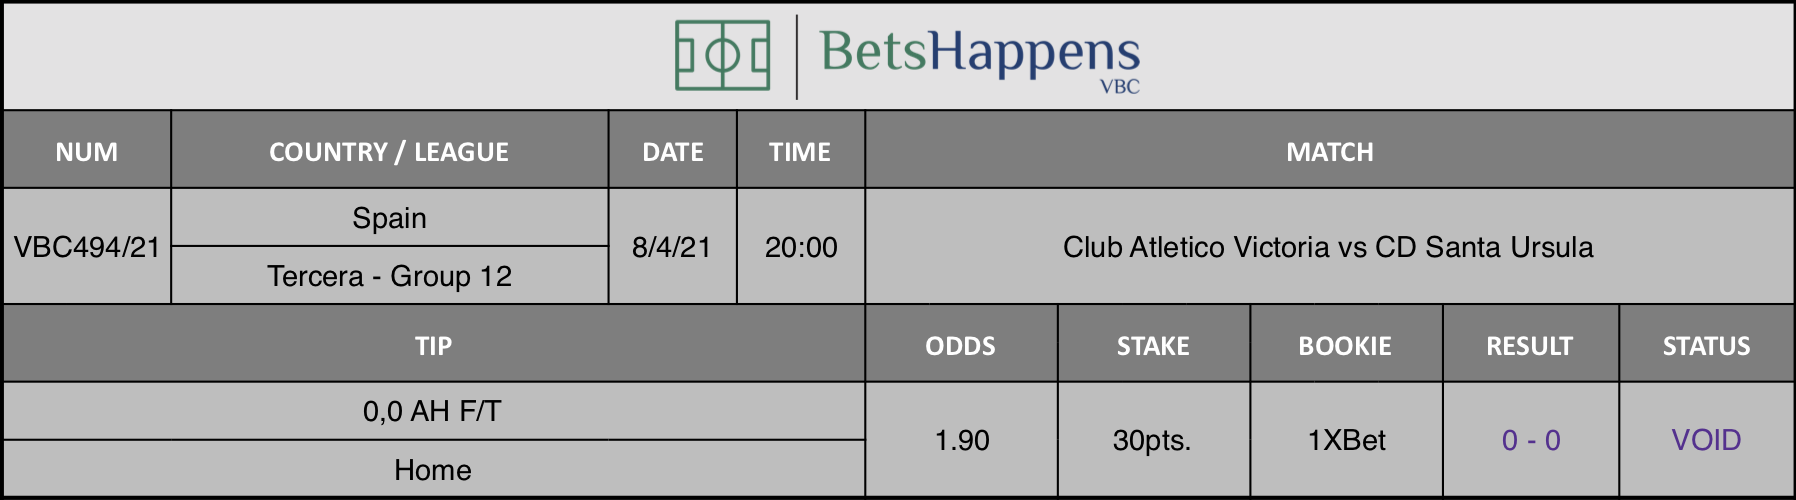 Results of our tip for the Club Atletico Victoria vs CD Santa Ursula match where 0,0 AH F/T Home is recommended.